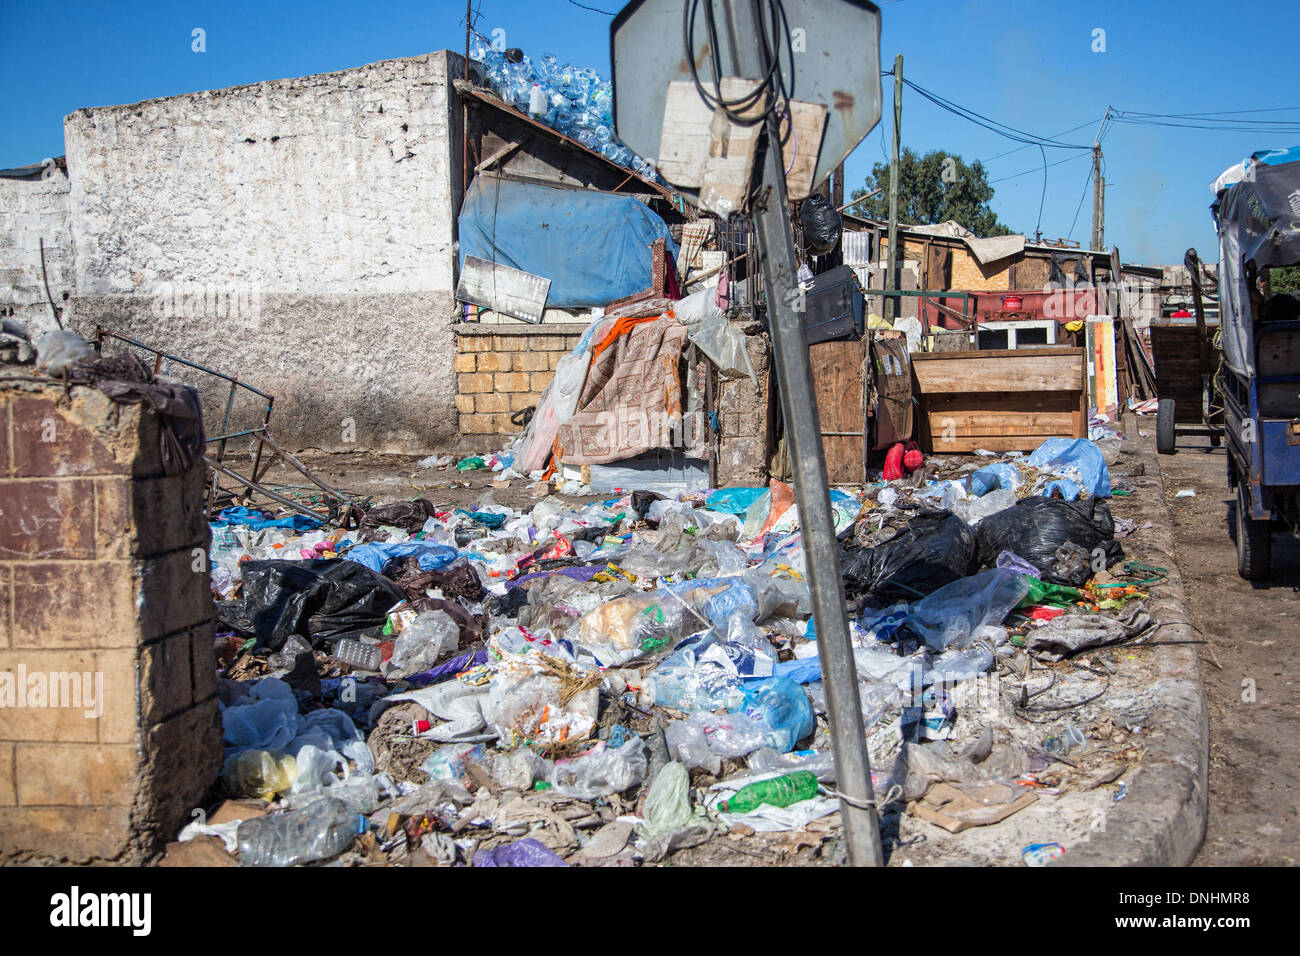 OUTDOOR DUMP NEAR THE SHANTYTOWNS HAY MOHAMMADI THE POOREST - The porest